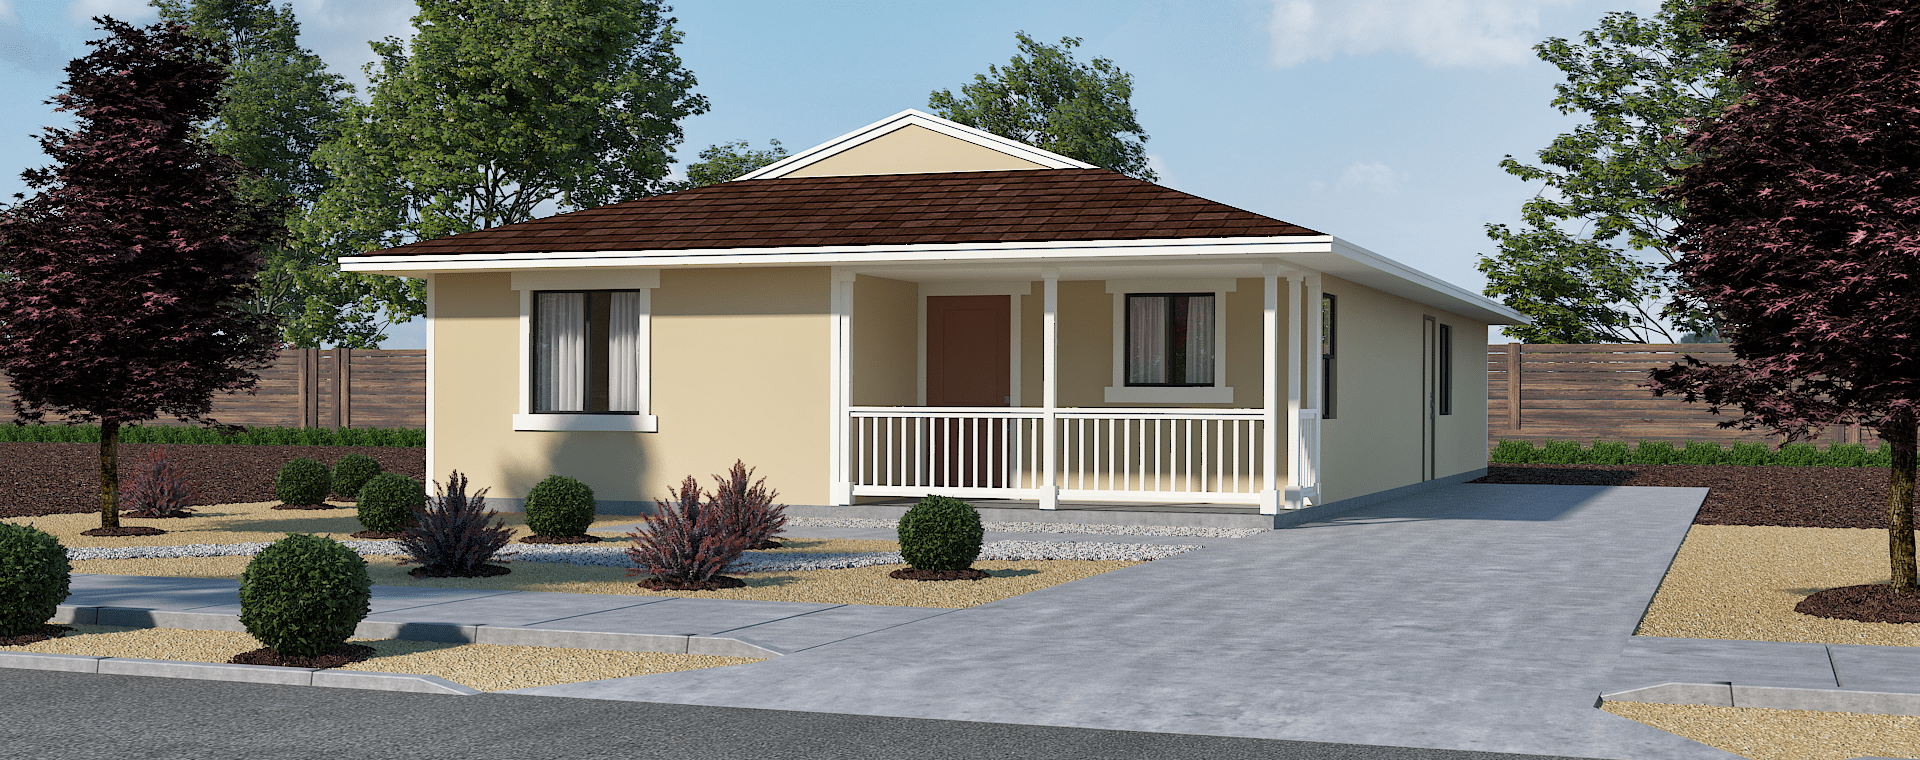 jenuane-communities-new-homes-nv-flats-plan-3-1355